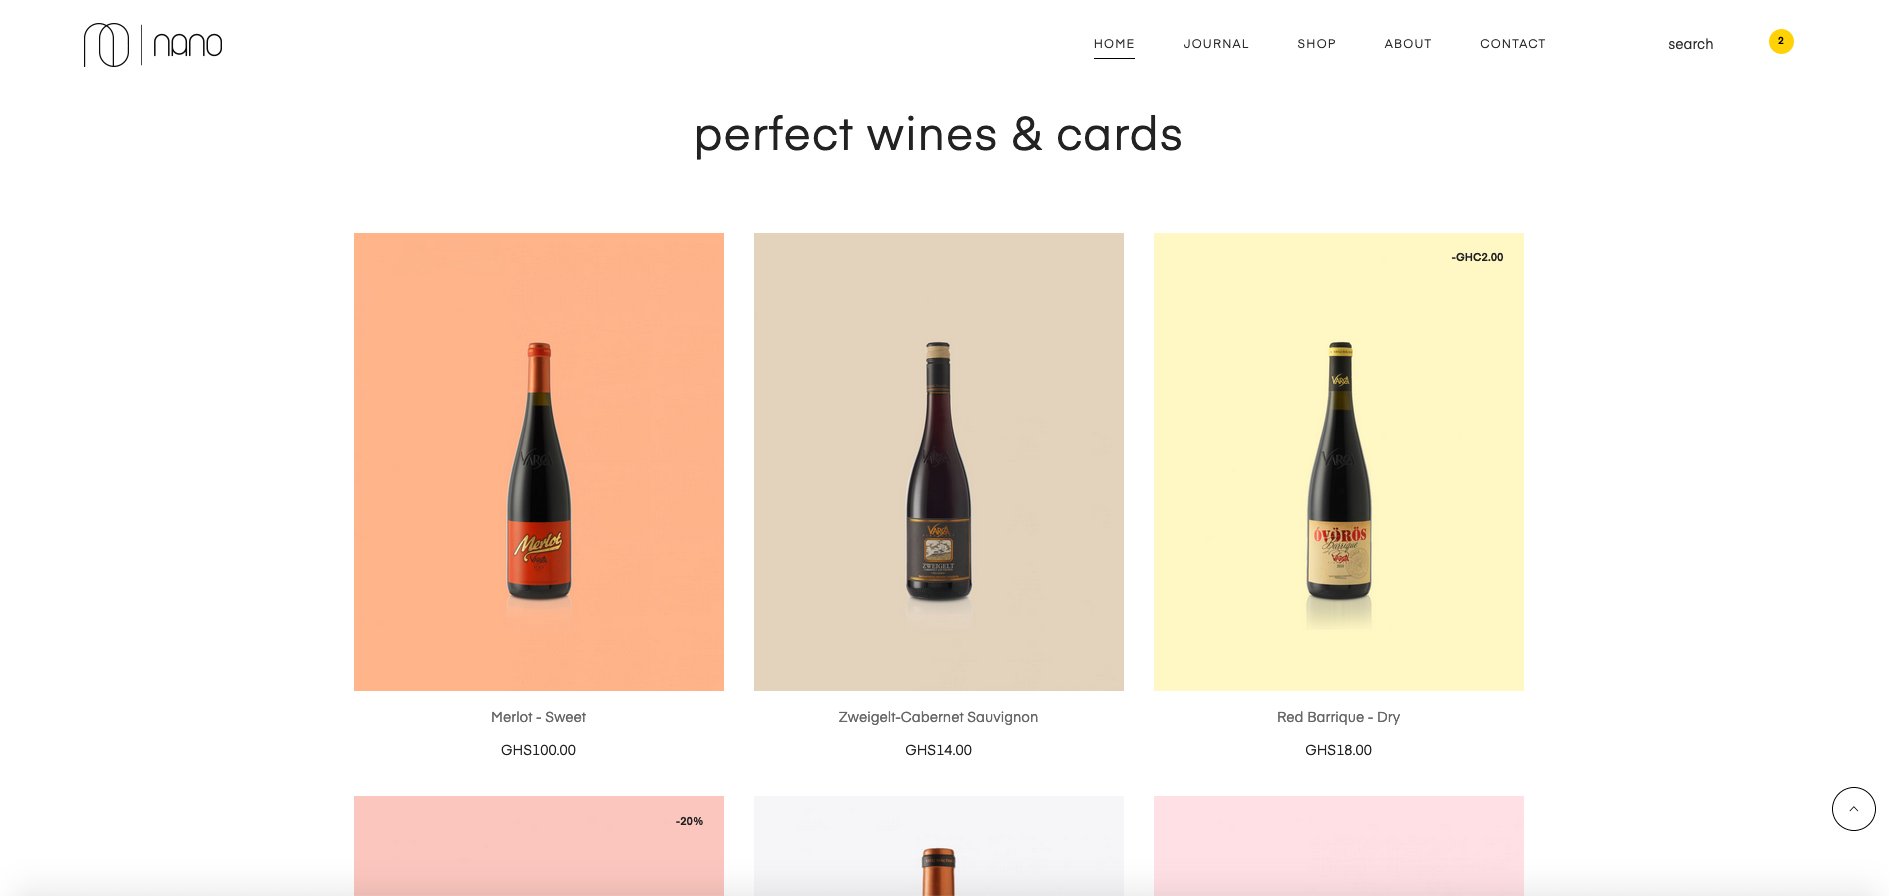 Nano wines and cards homepage